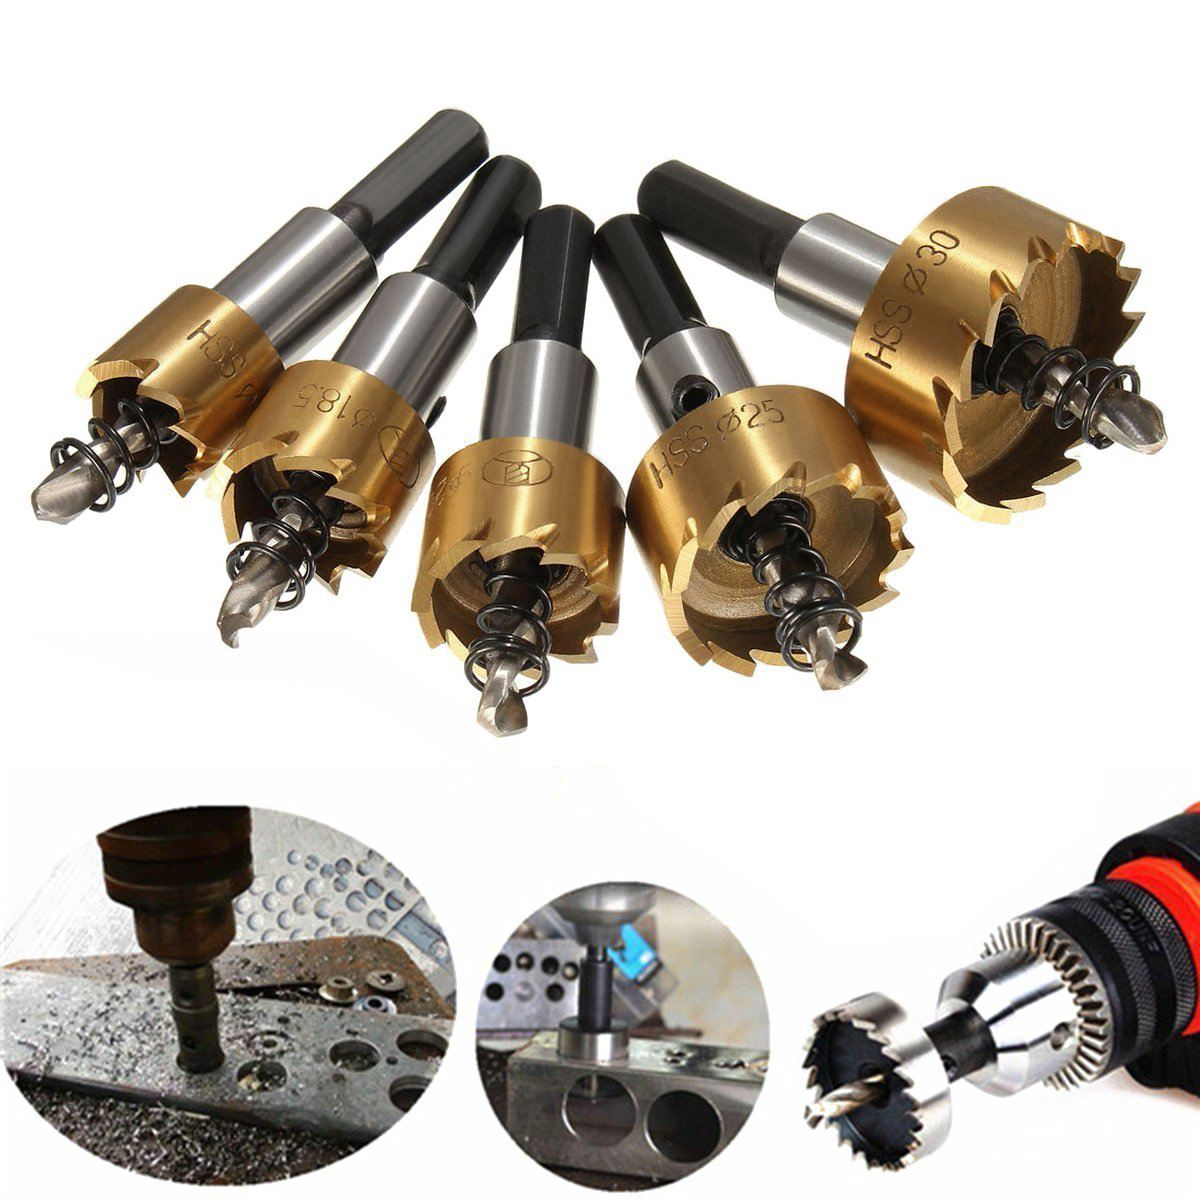 WSFS Hot 5pcs 16-30mm High Speed Steel Drill Set Meche Cutter For Drilling Cylindrical Saw - Gold